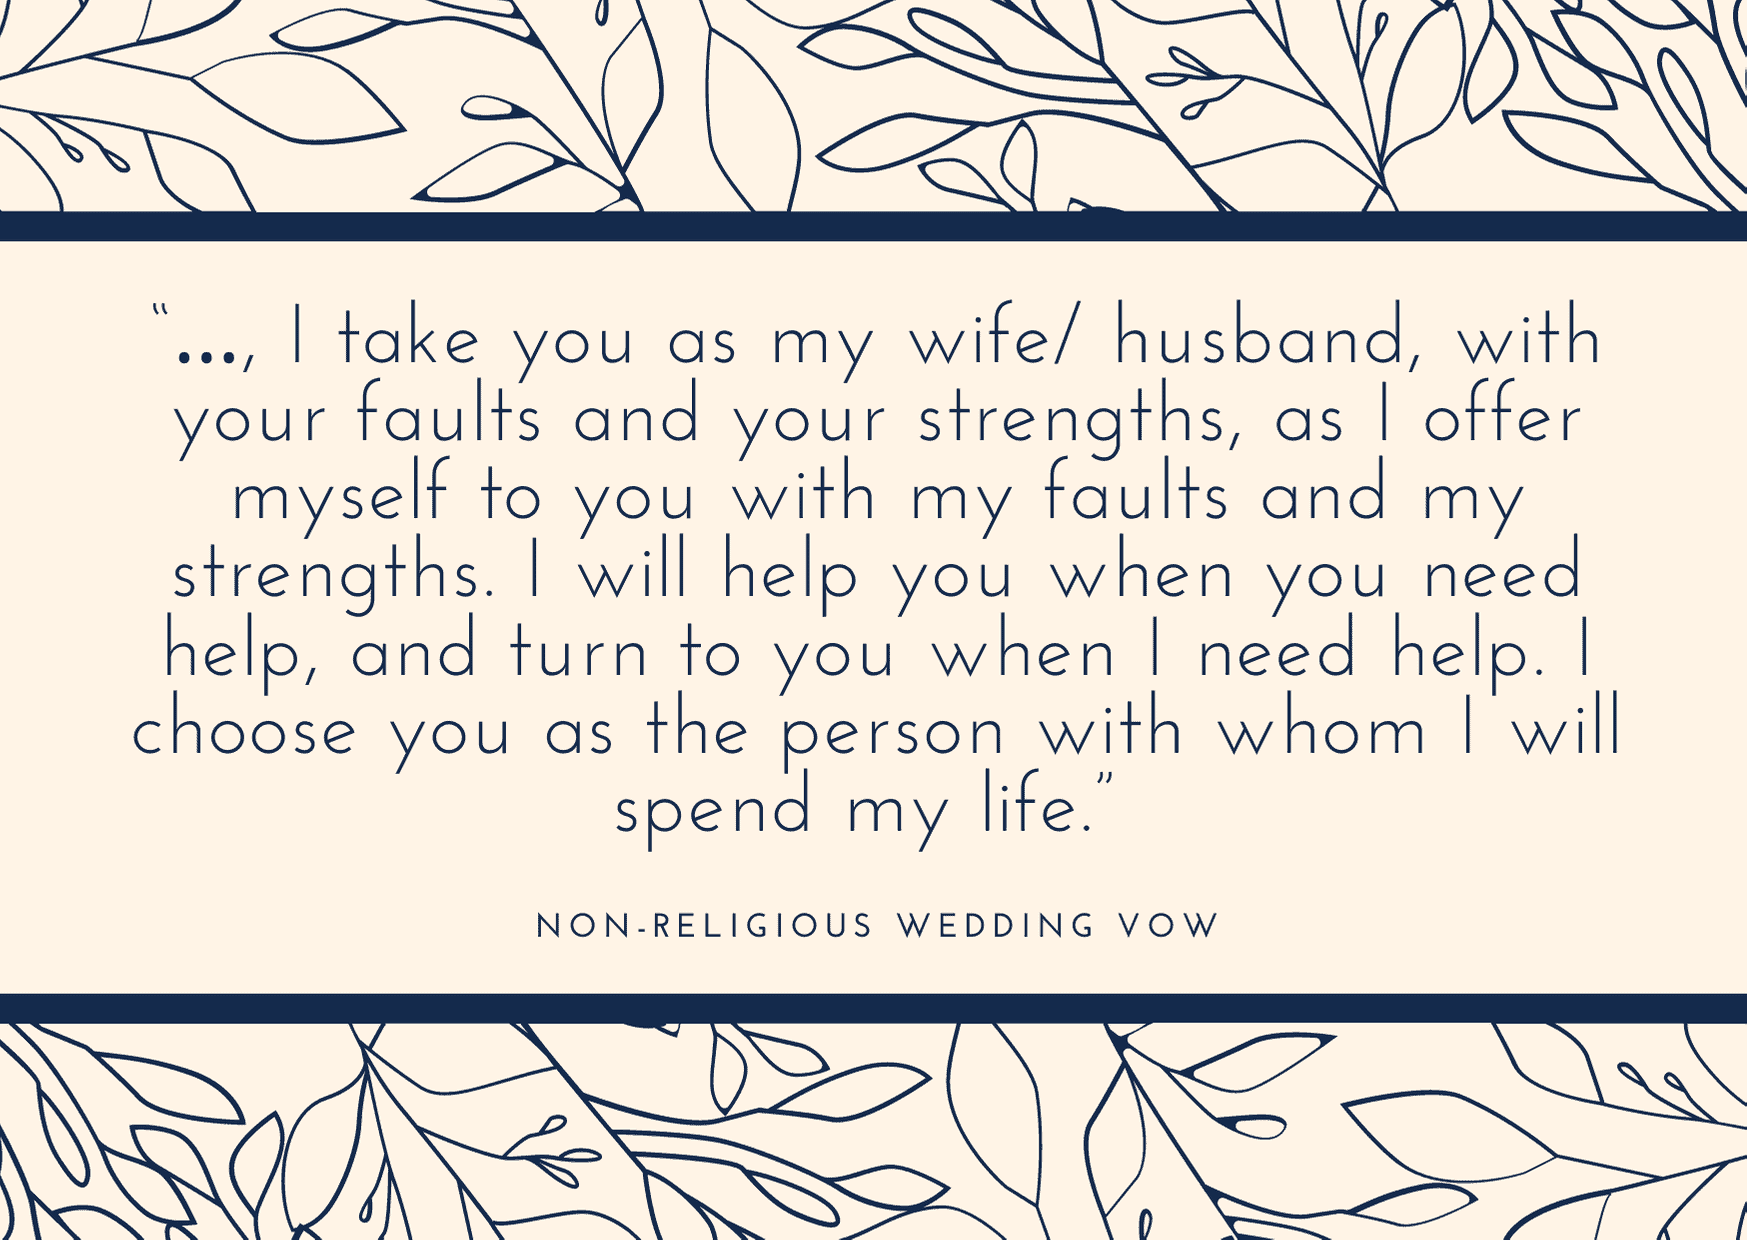 non-religious wedding vows